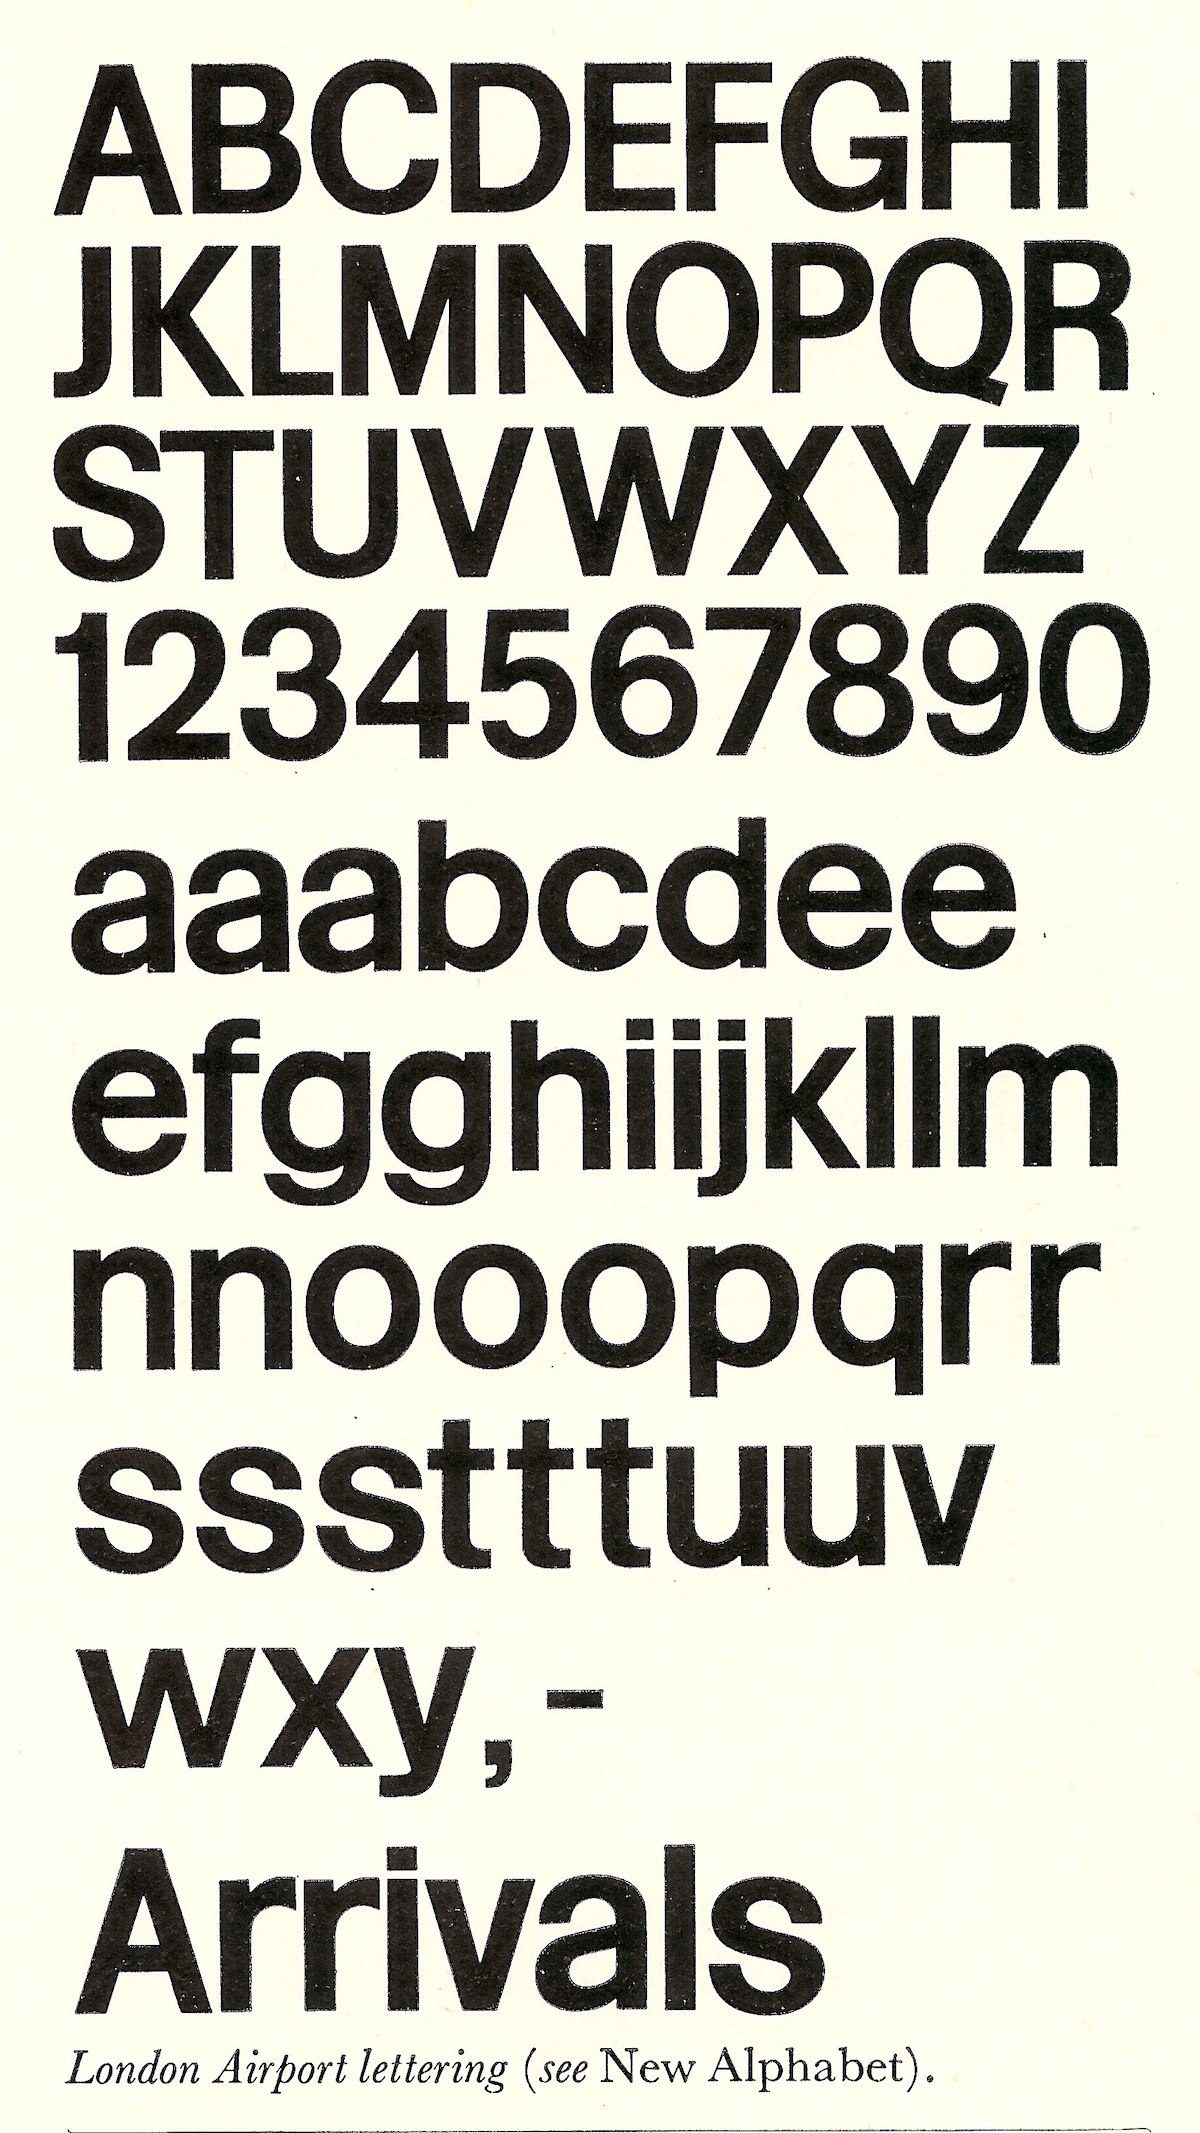 London Airport Lettering typeface by Matthew Carter/Frederick Gibberd, 1961